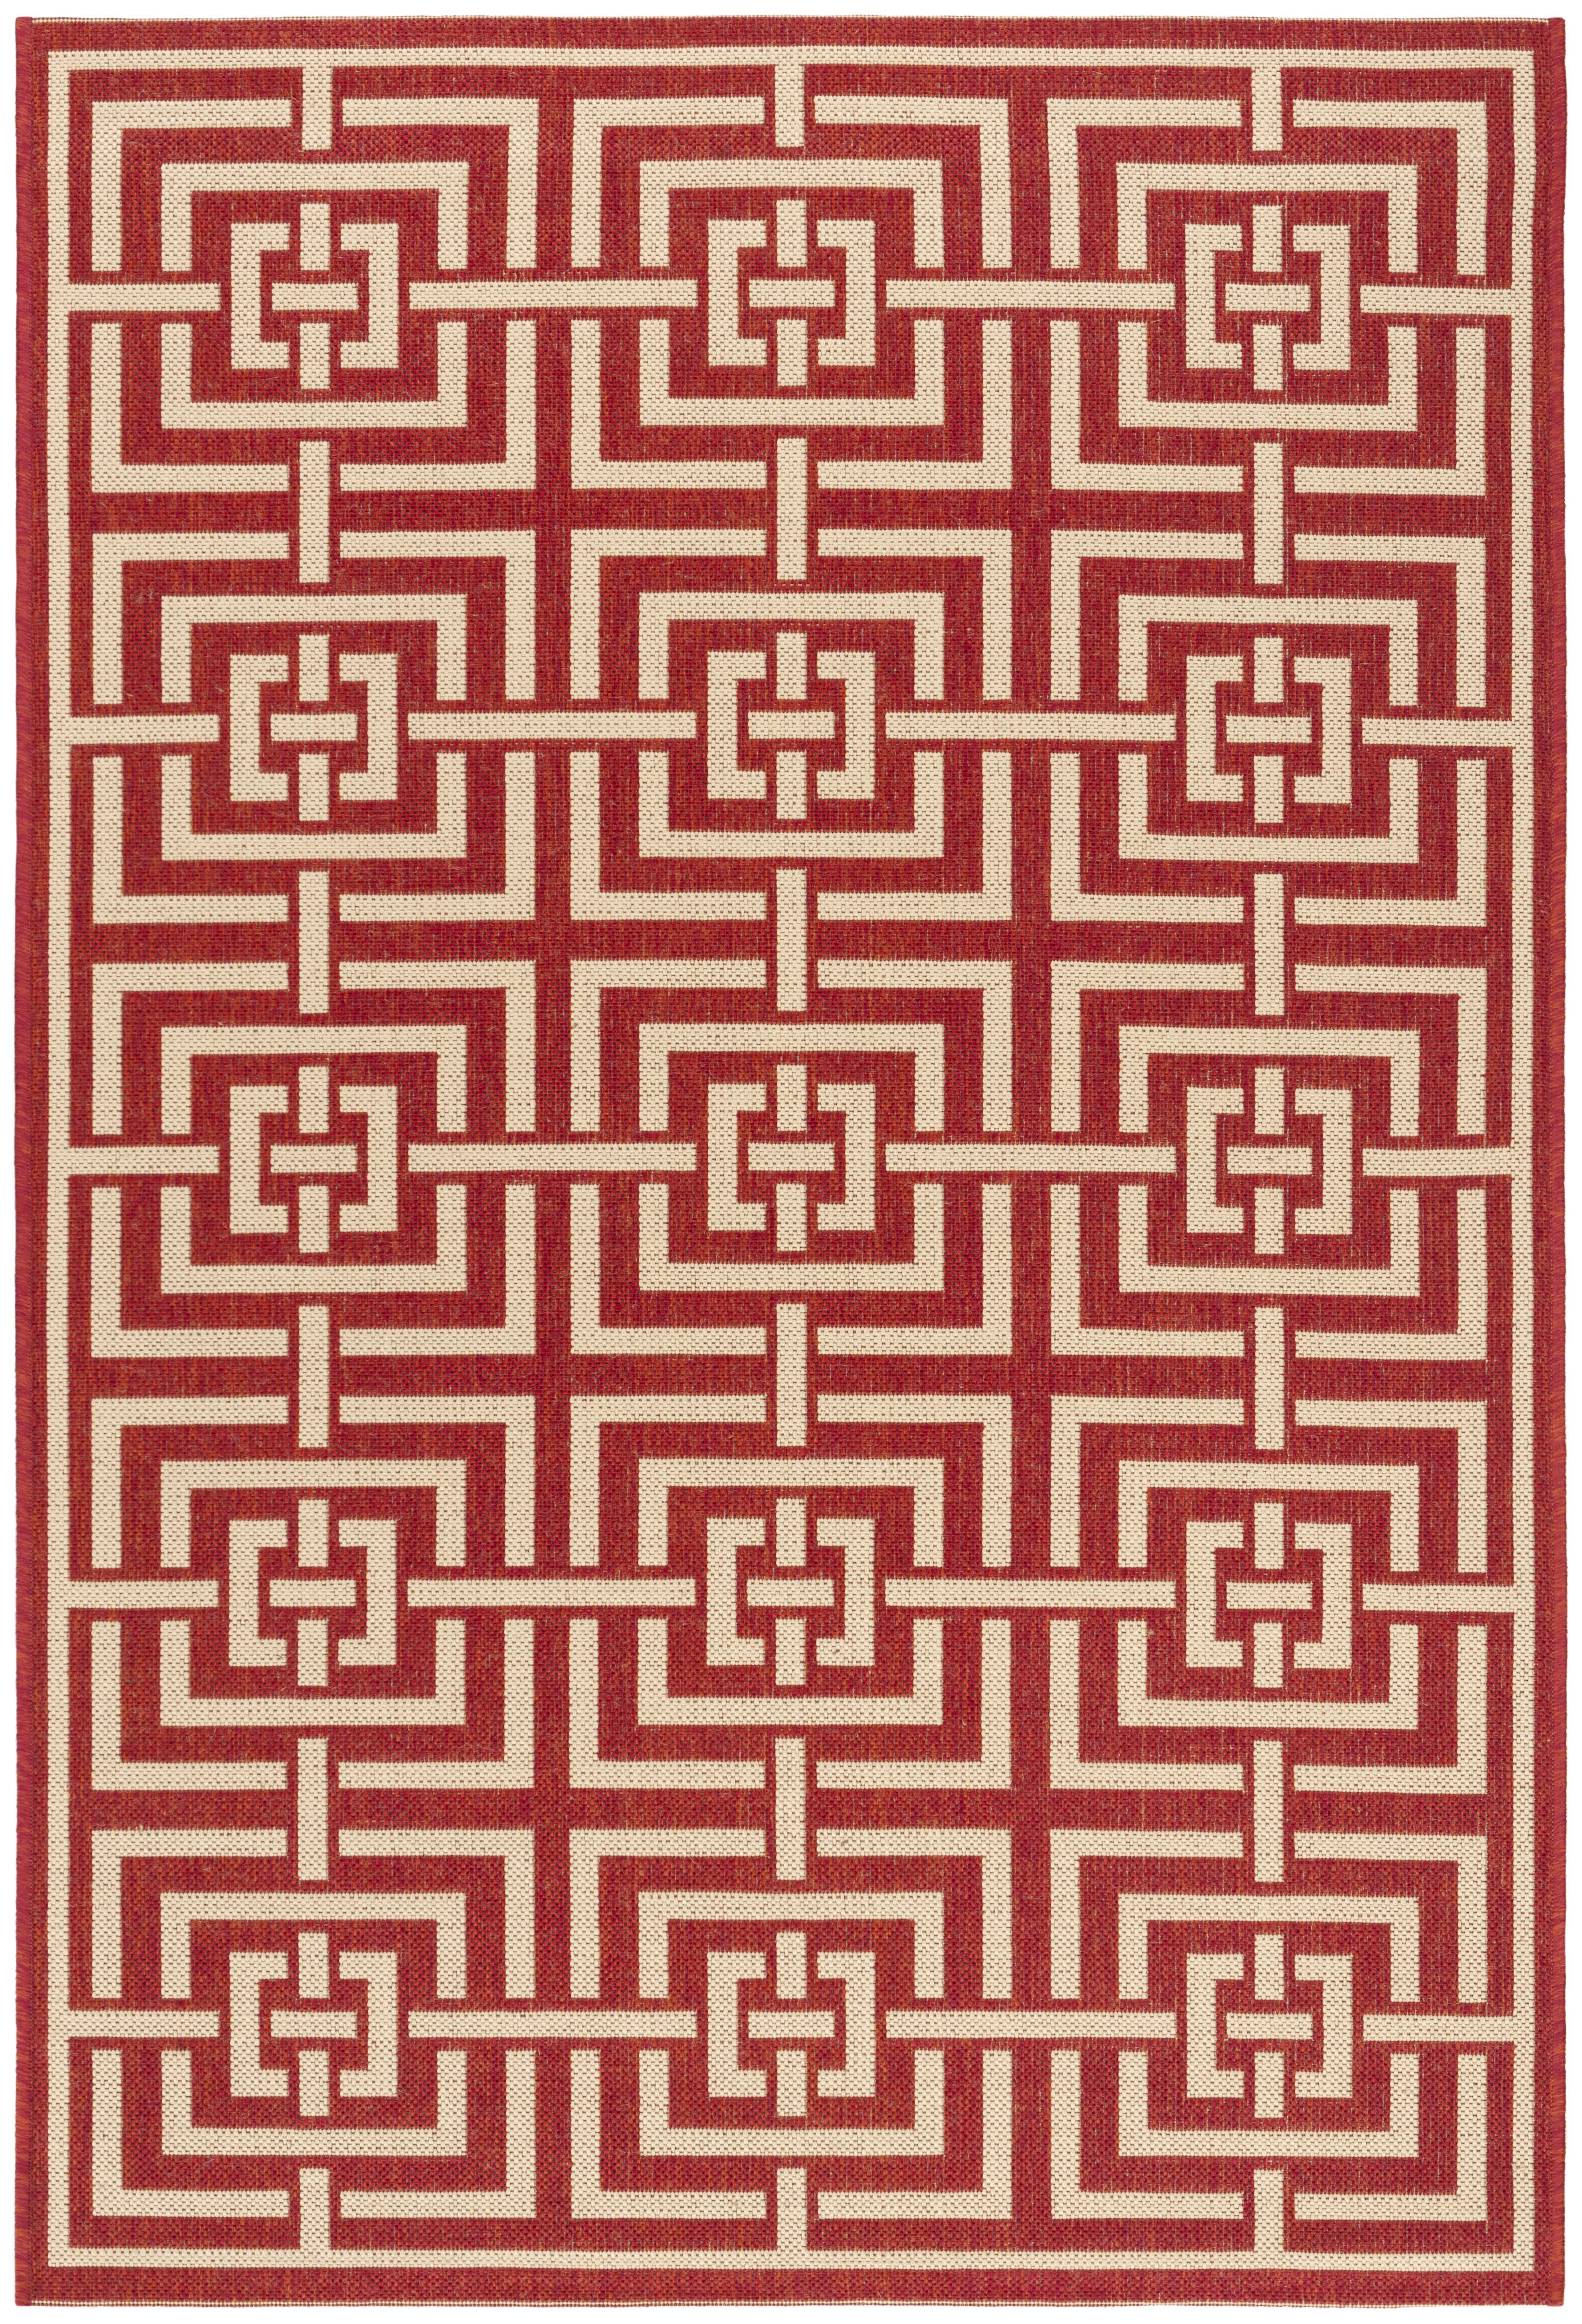 Laguna 128 3' X 5' Red Polypropylene Rug